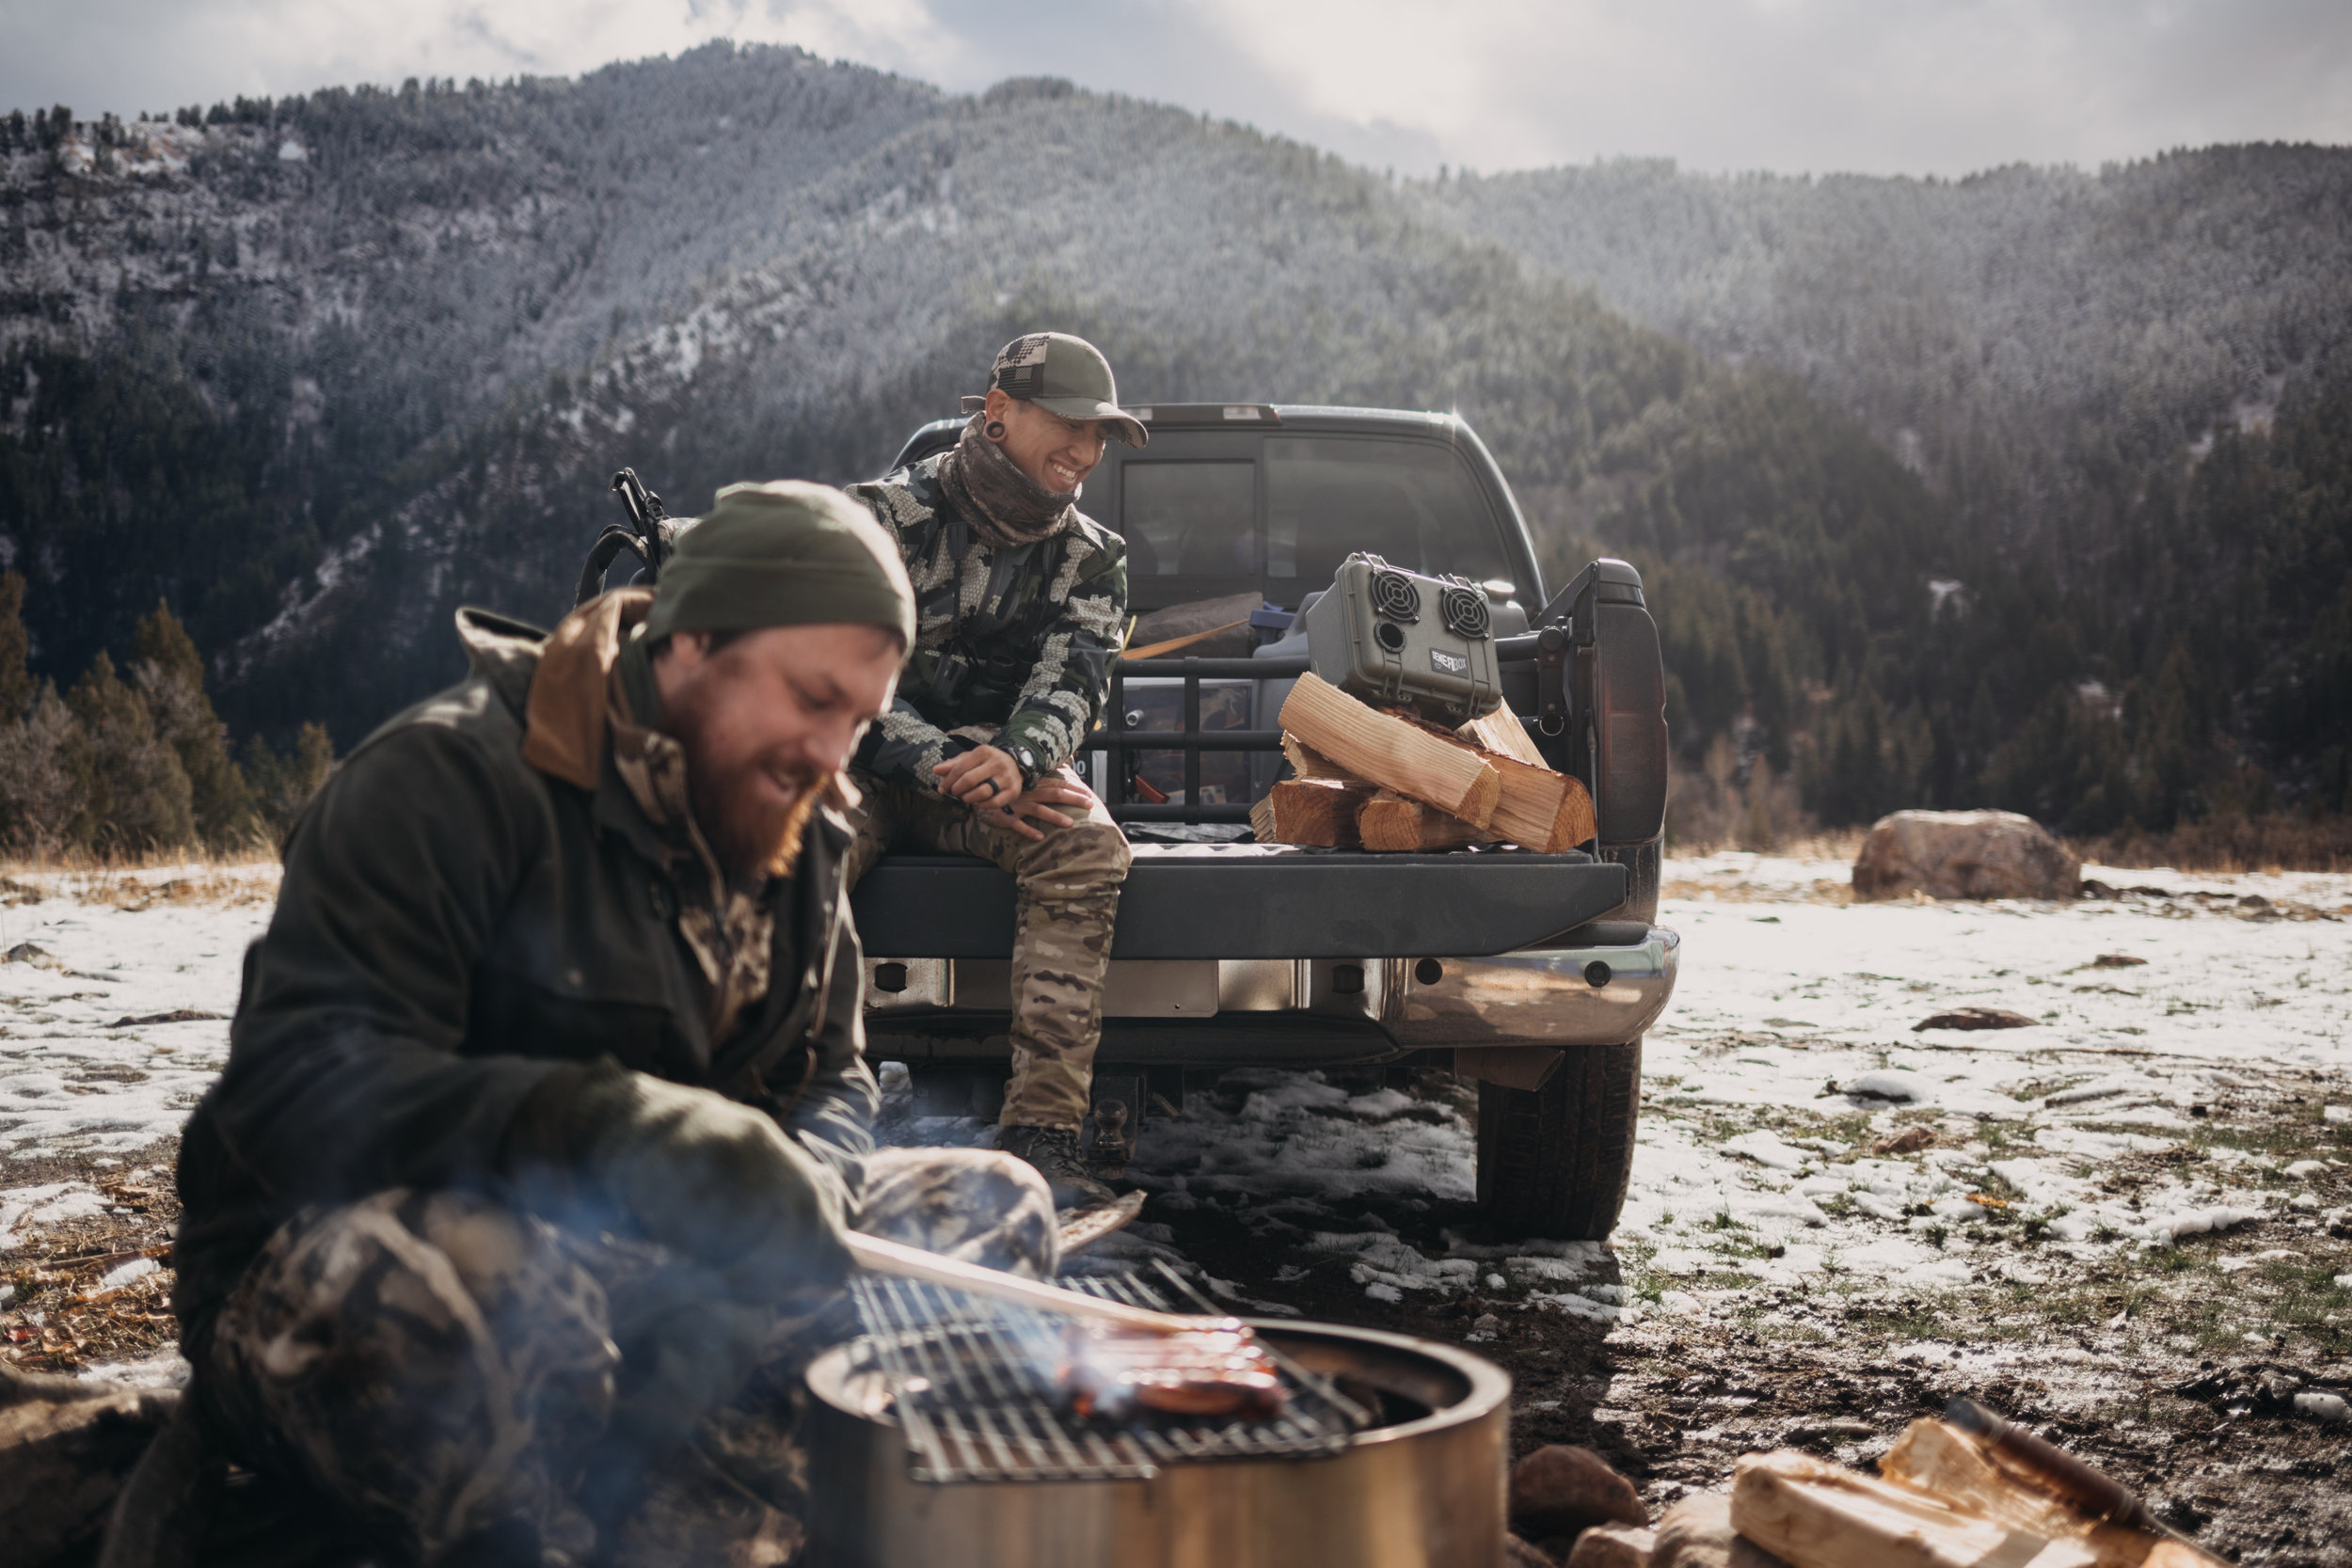 leah flores idaho hunting commercial photography demerbox stereo outdoors